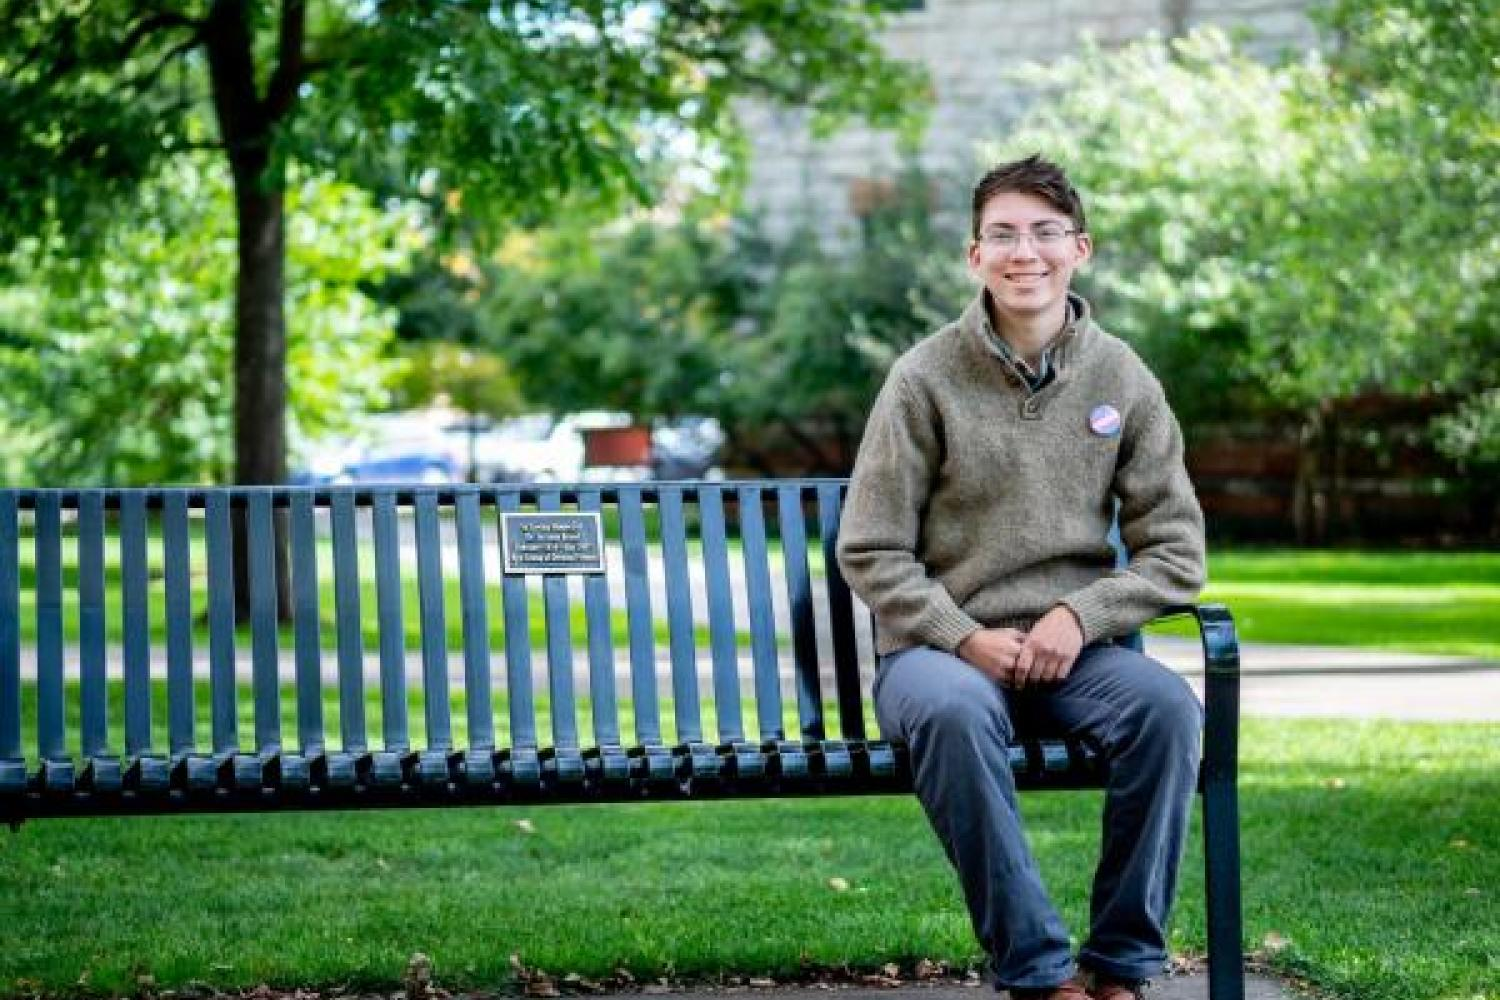 lior sitting on a park bench, greenery in background